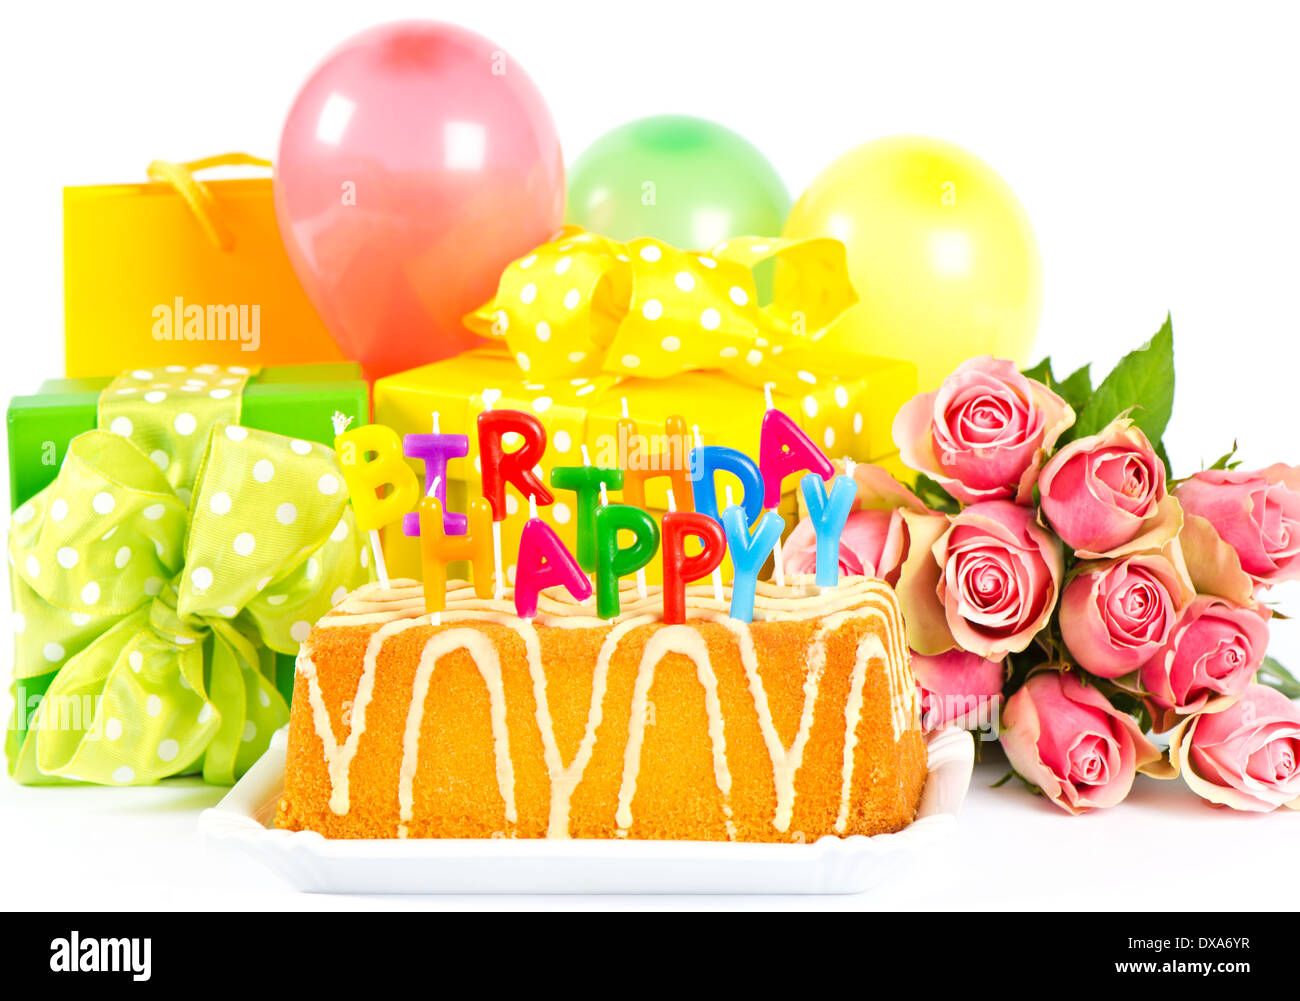 Happy Birthday Party Decoration With Roses Flowers Cake Balloons Gifts And Candles Stock Photo Alamy